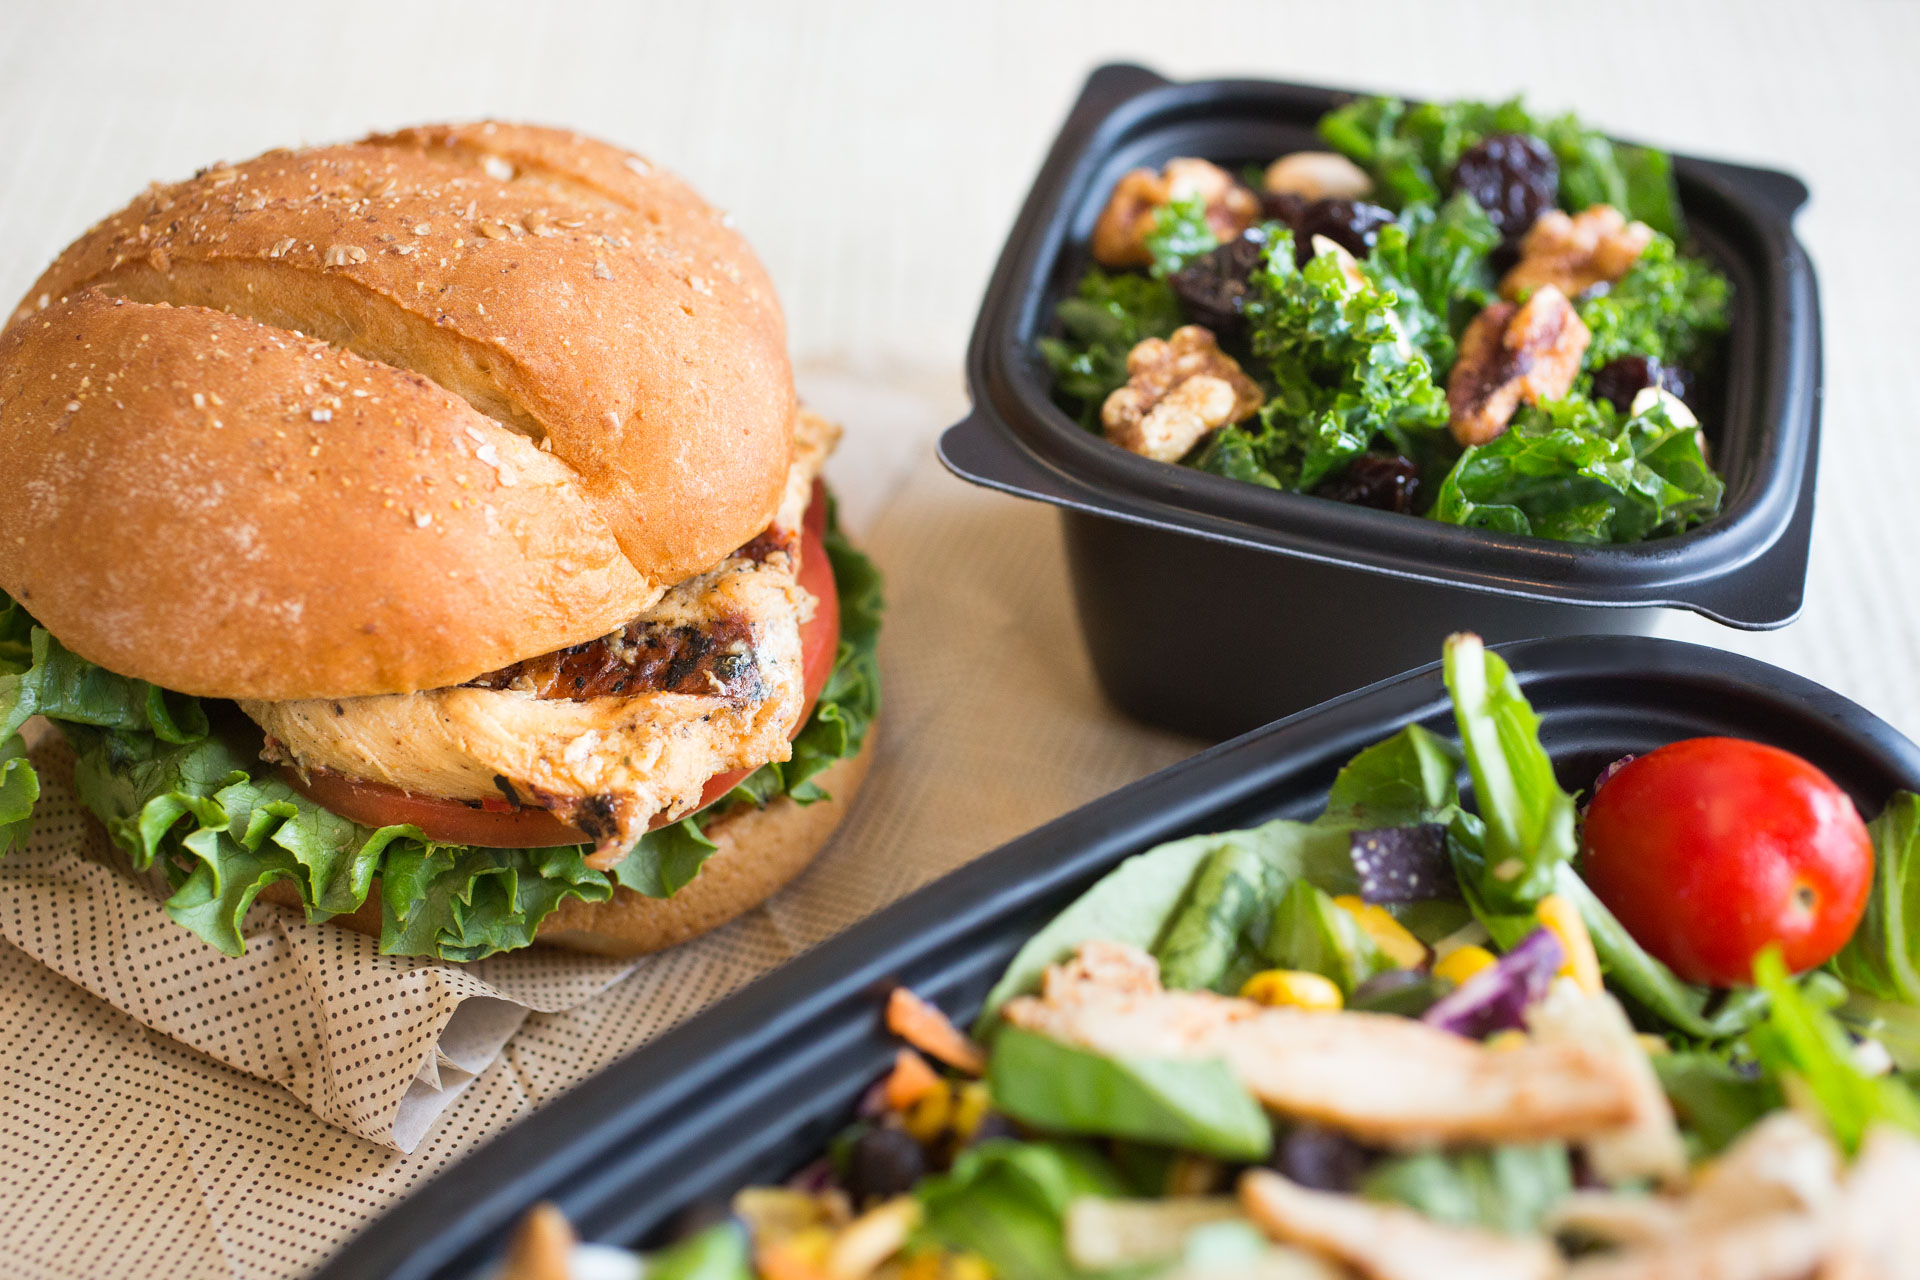 Discussion on this topic: Healthy Fast-Food Options From a Nutritionist, healthy-fast-food-options-from-a-nutritionist/